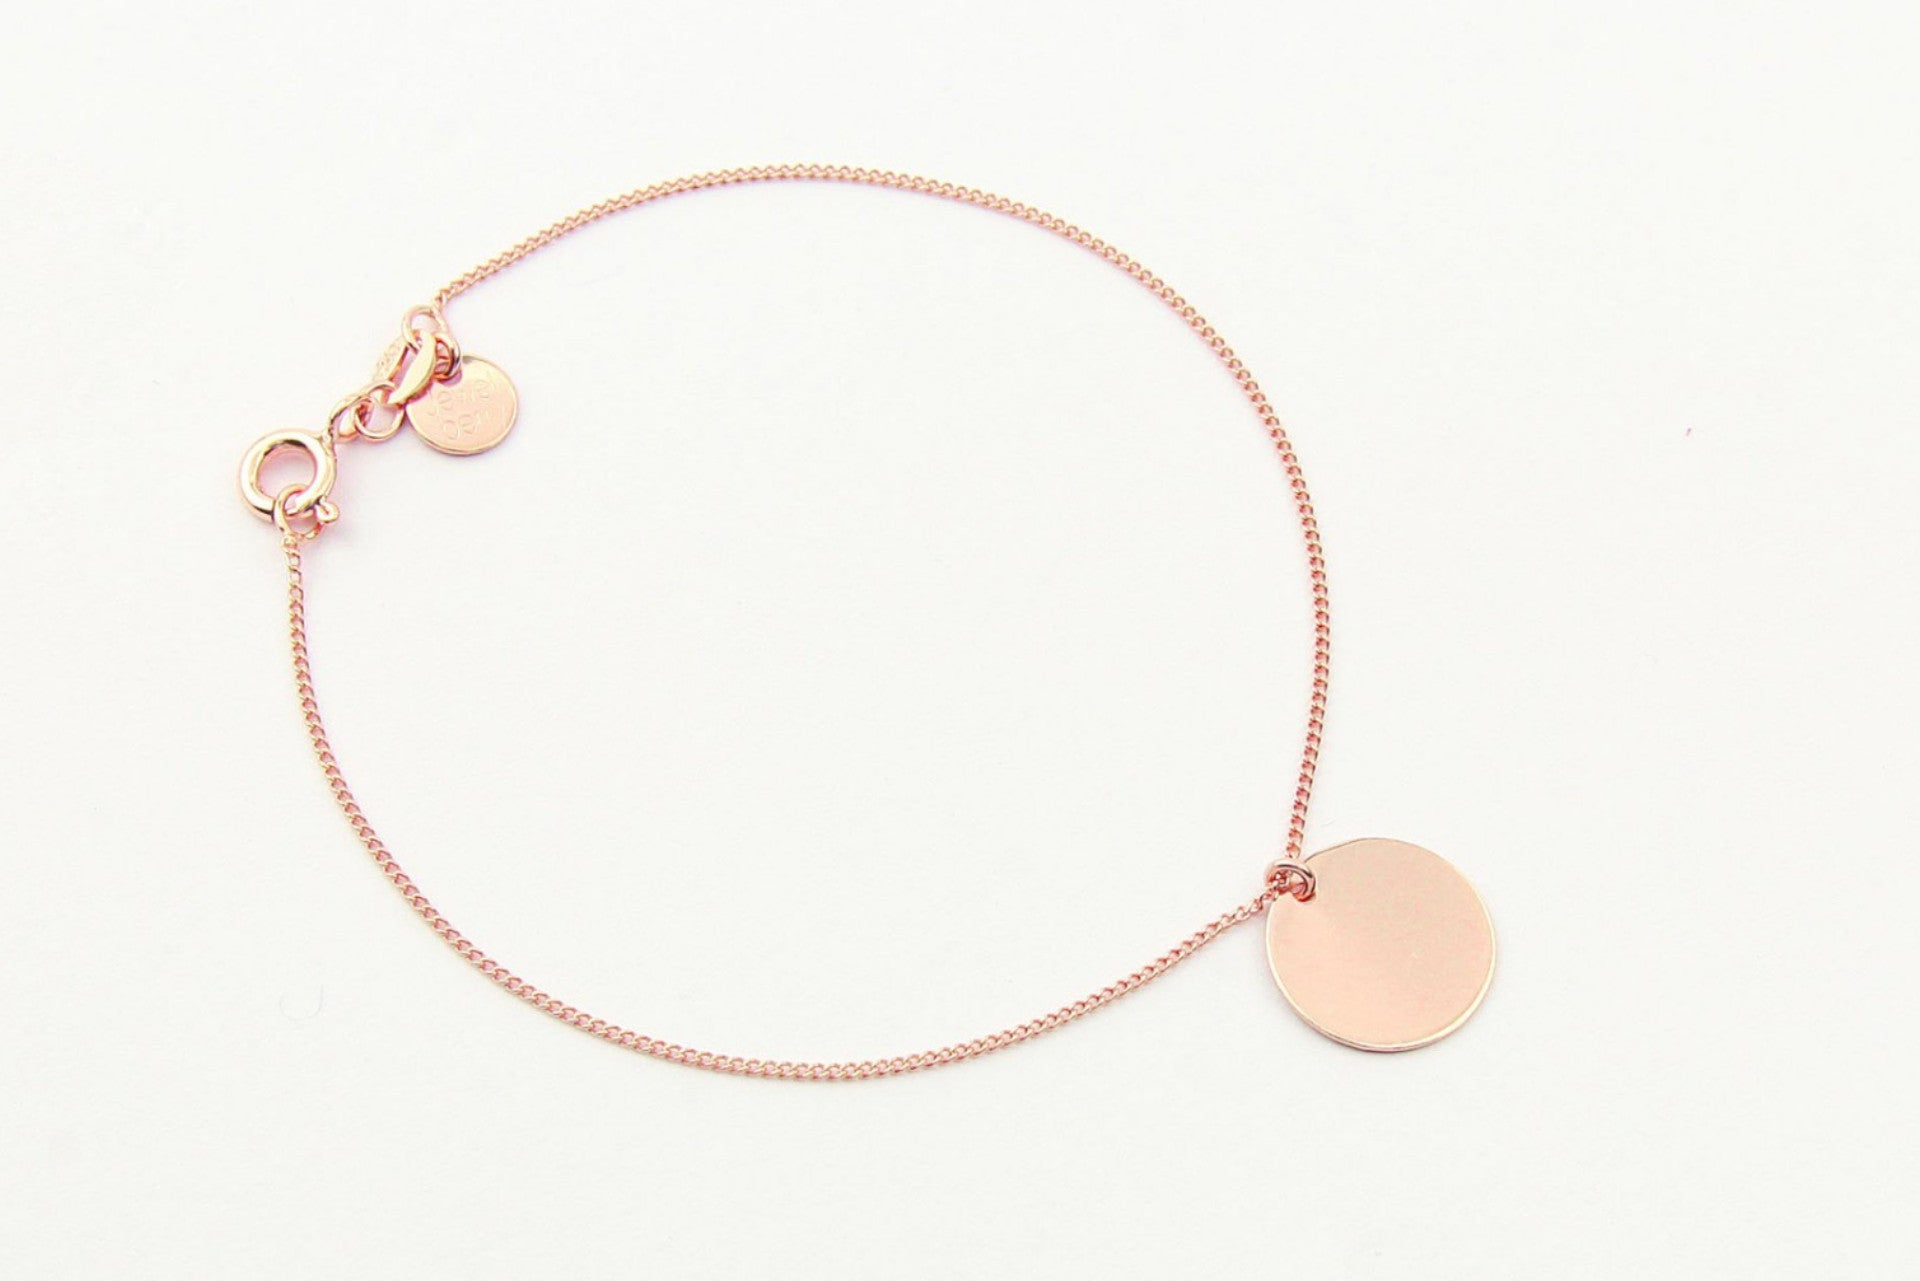 jewelberry armband bracelet medium disc rose gold plated sterling silver fine jewelry handmade with love fairtrade curb chain